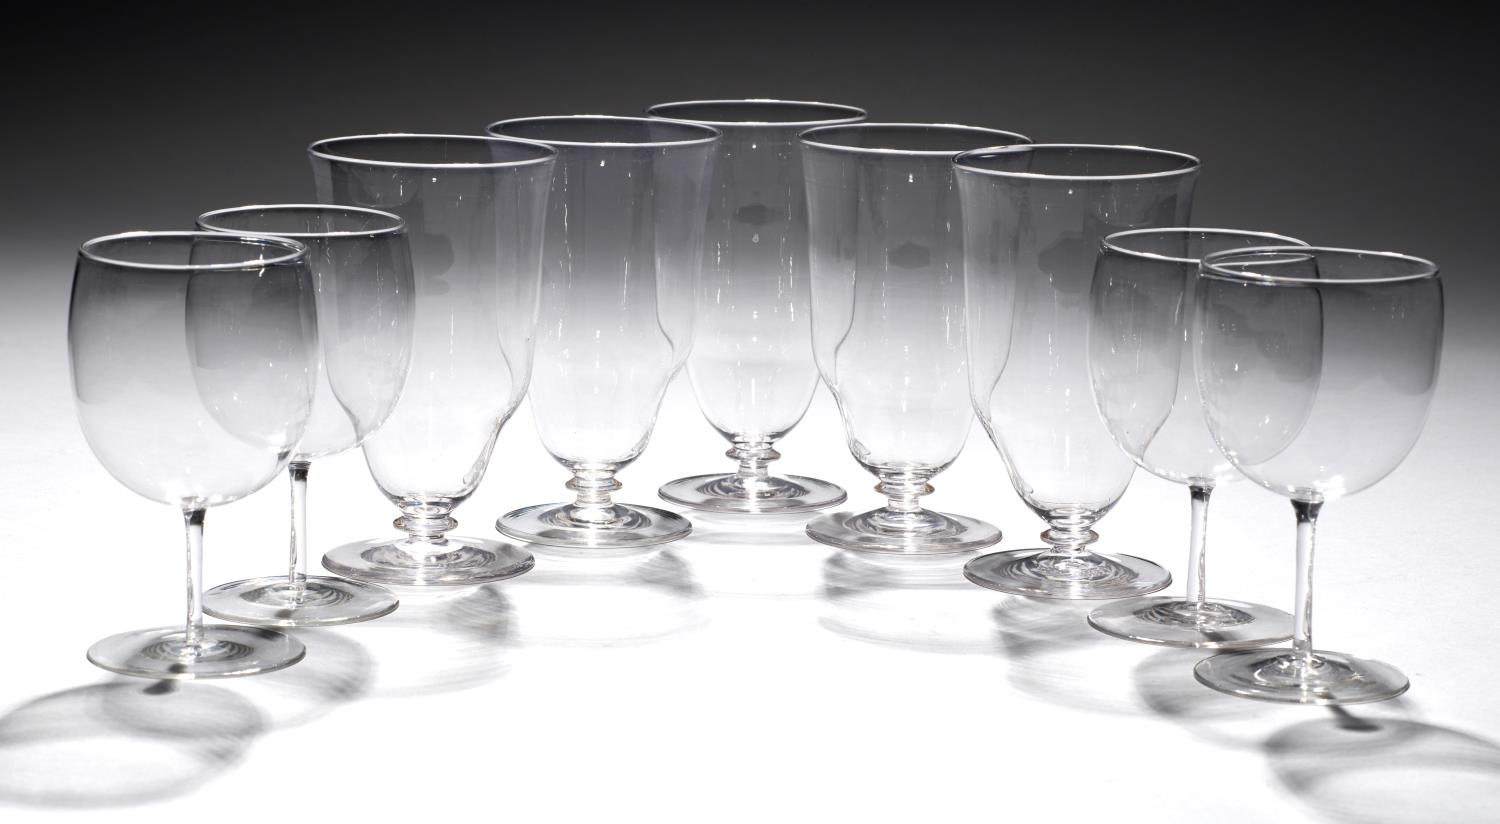 Lot 214 - A GROUP OF NINE ENGLISH DRINKING GLASS, POSSIBLY JAMES POWELL, C1900 12 and 13cm h Good condition